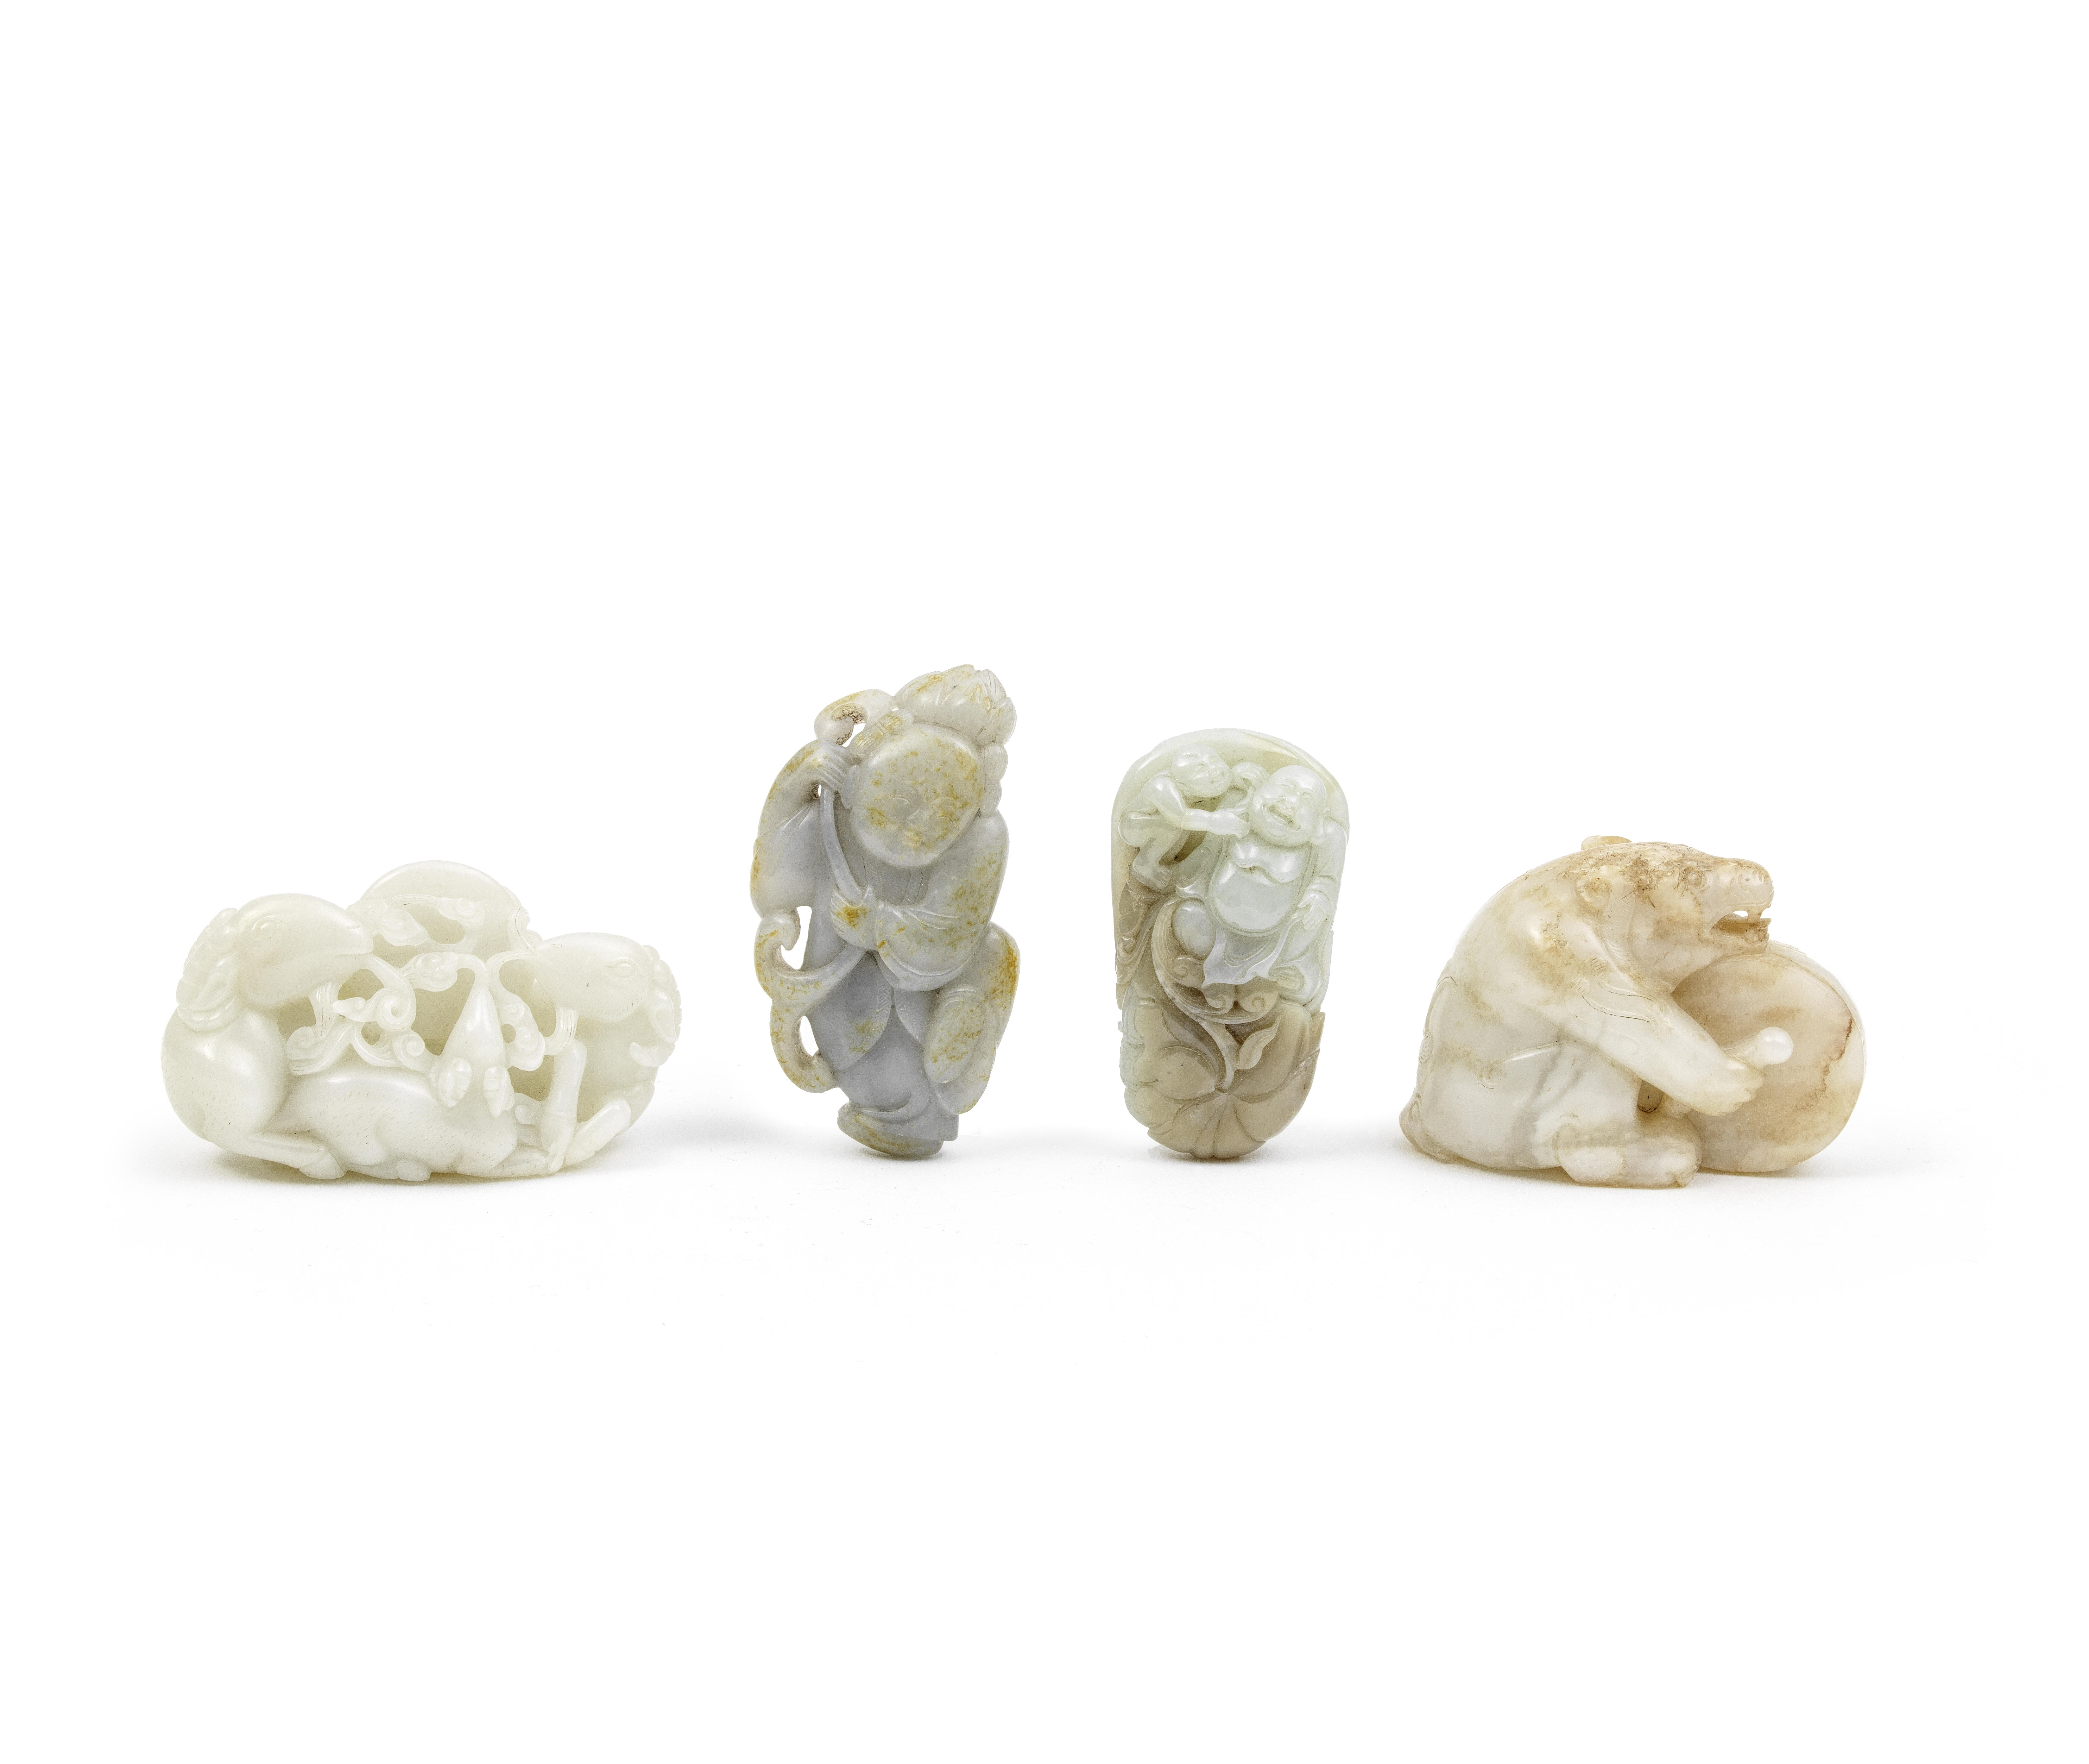 A GROUP OF FOUR JADE CARVINGS 18th/19th century and later (5)